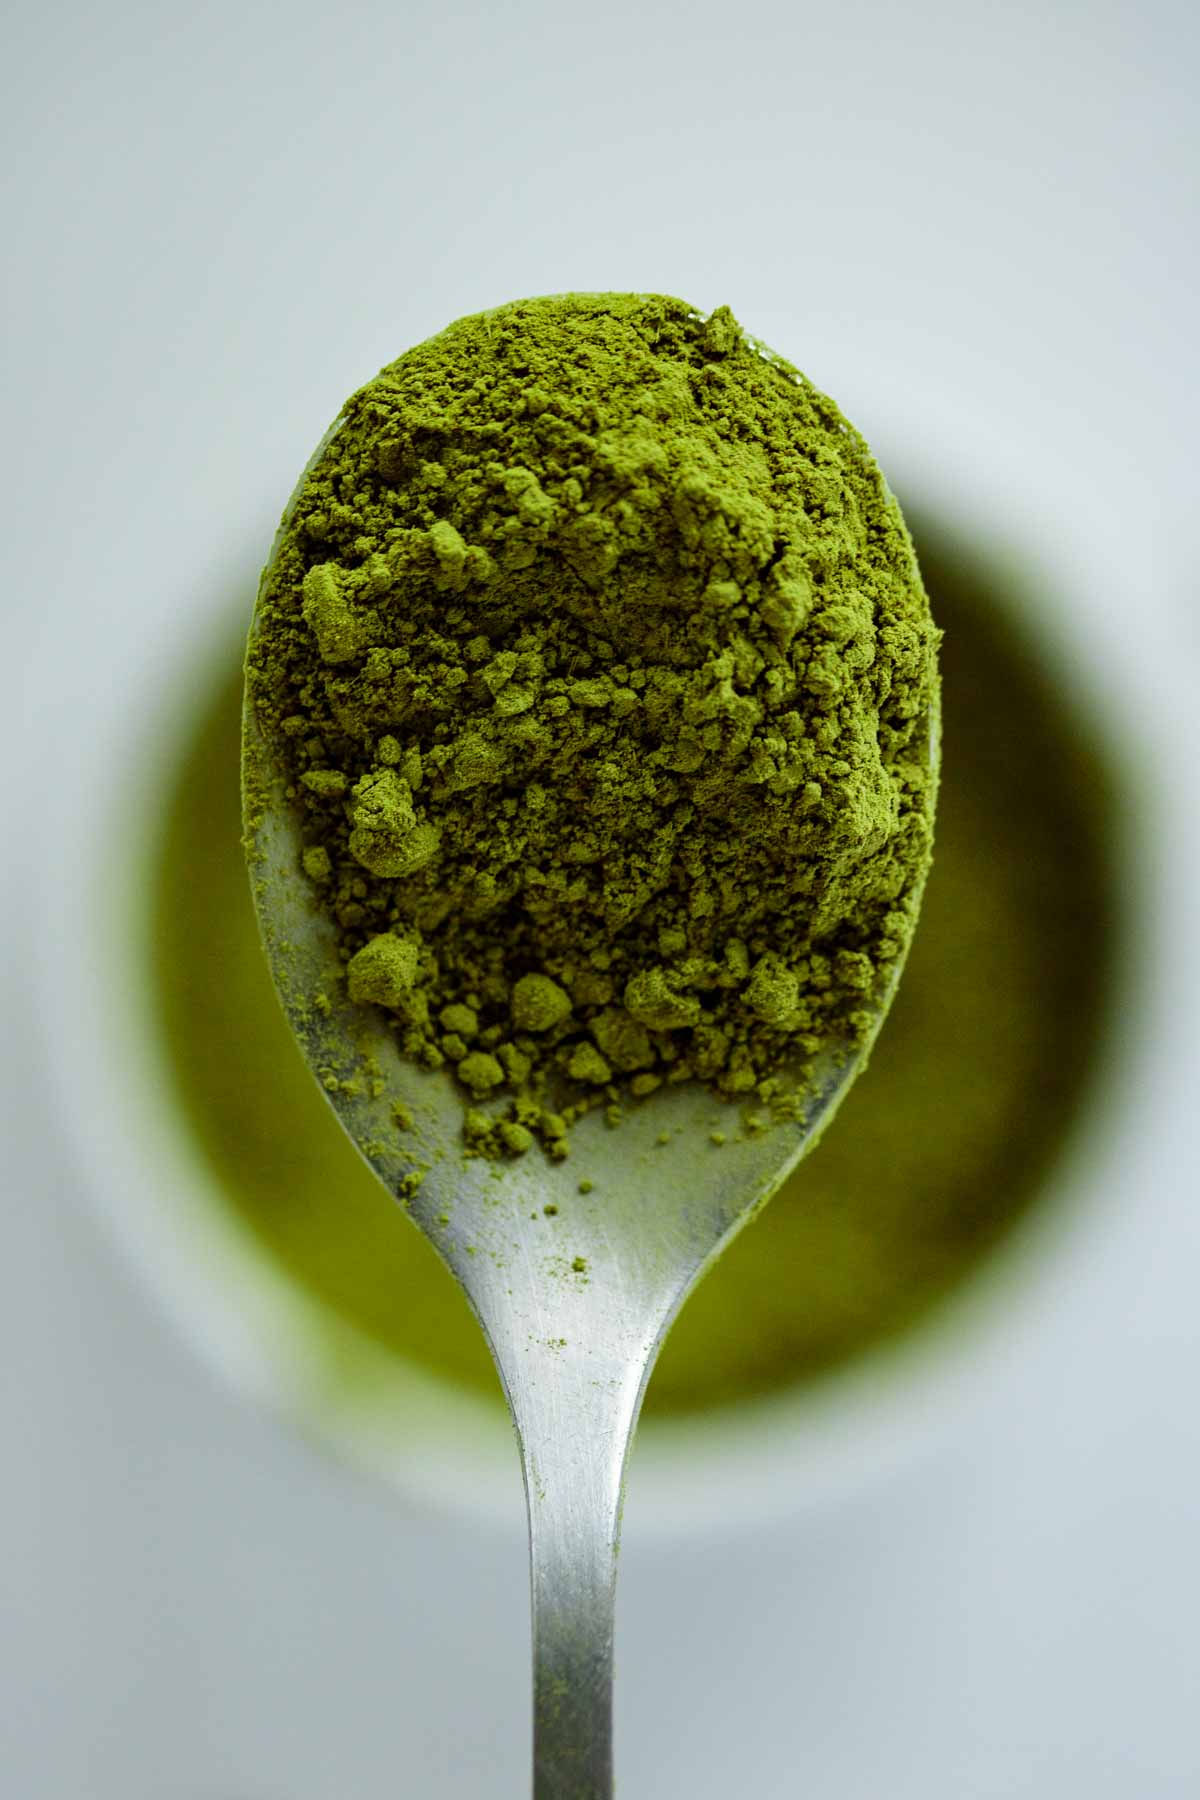 Close up on a spoon filled with vibrant green Matcha powder.